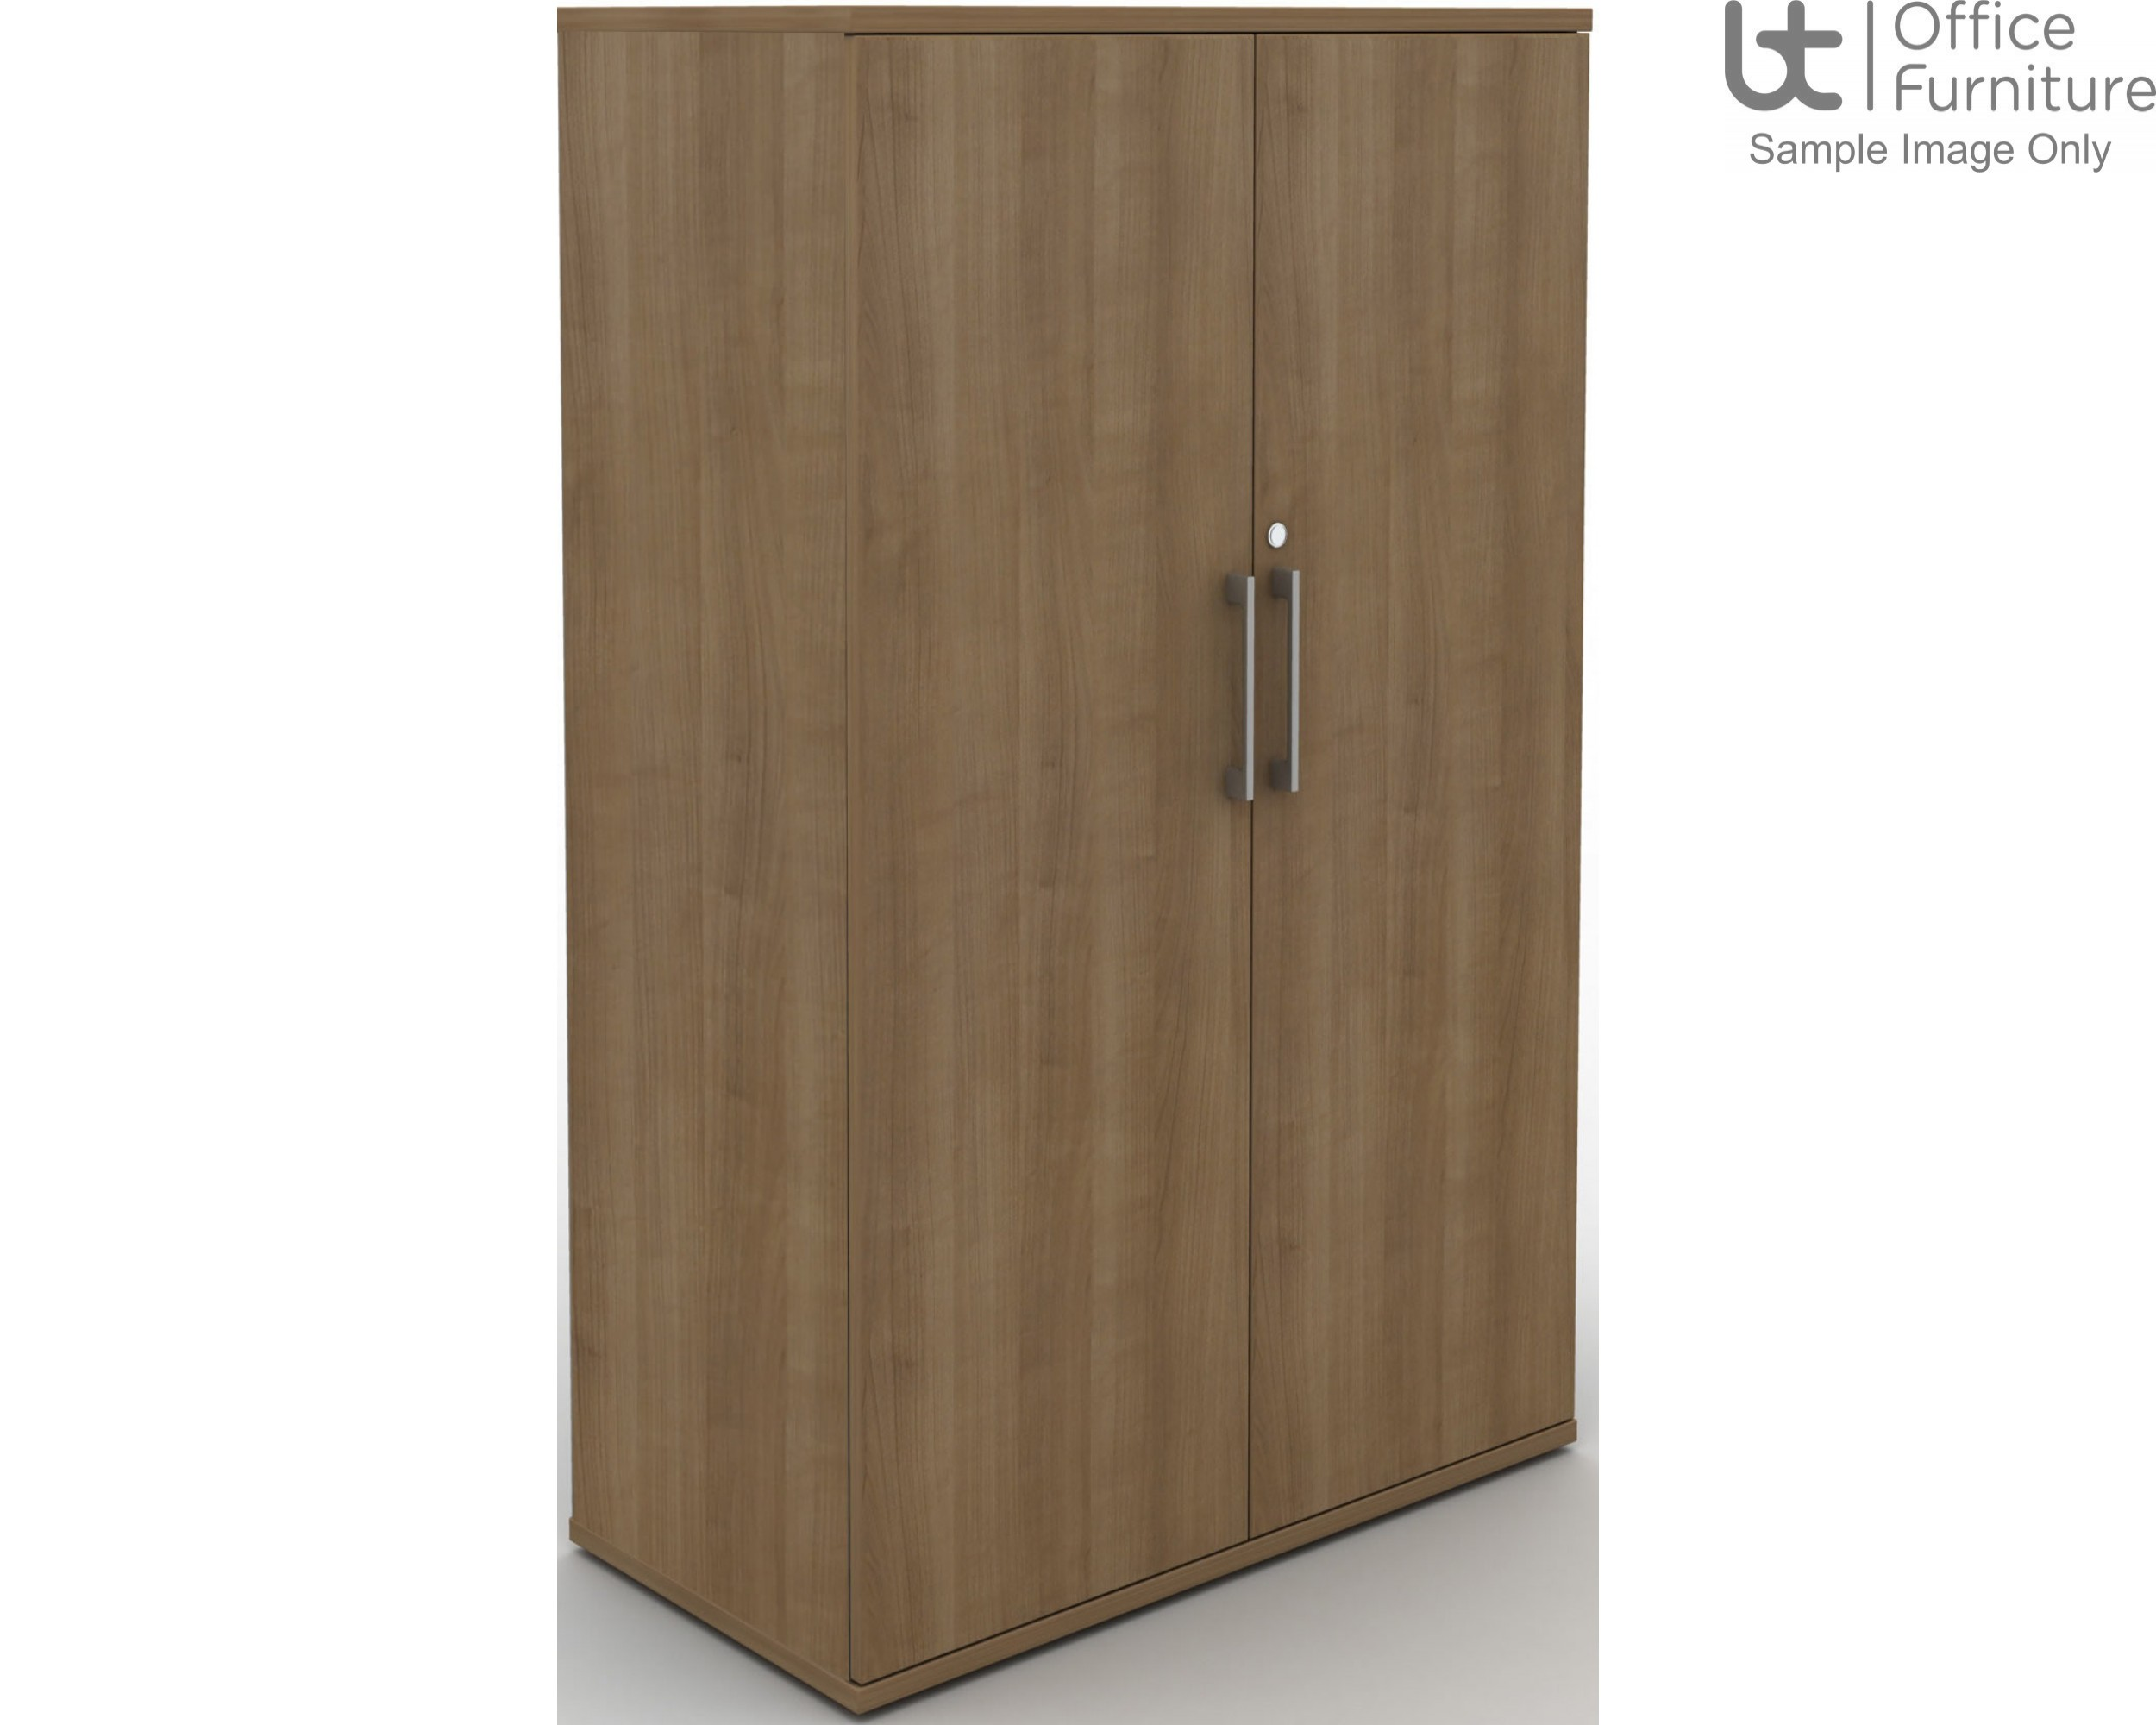 MB Storage Solutions - Storage Cupboard 350mm Deep, 800mm Wide - (Carcass in Matching Finish)